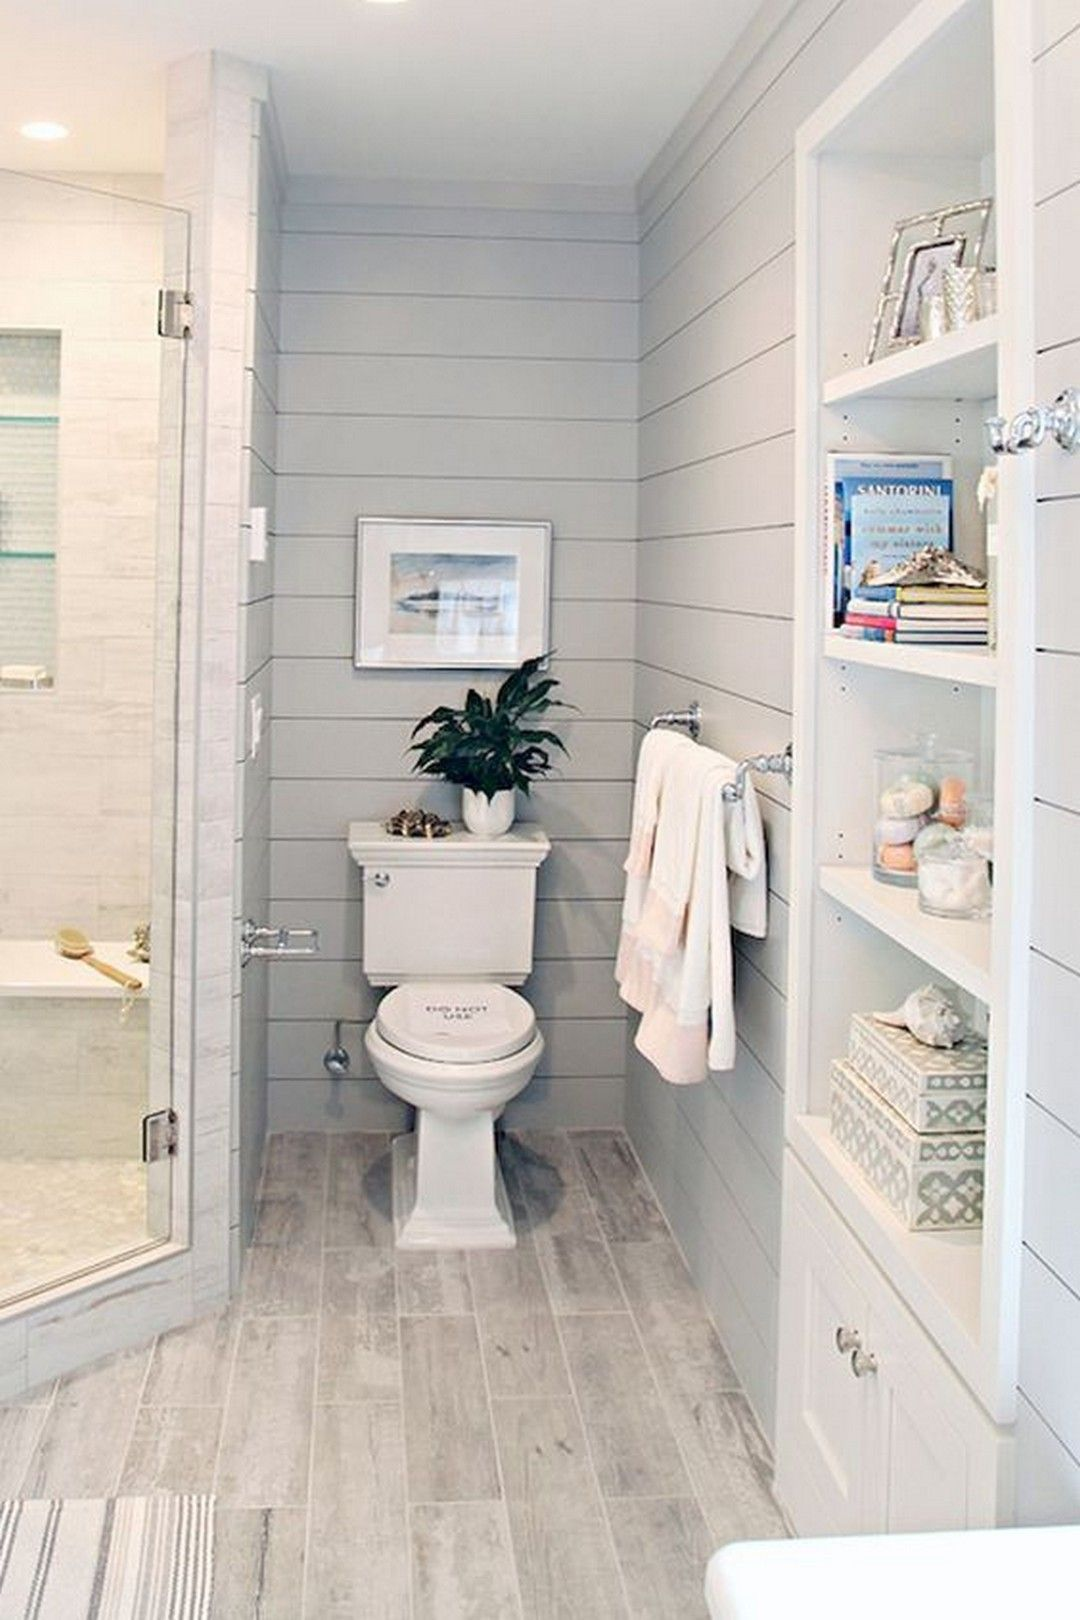 Convert Your Old Style Bathroom With This Small Master Ideas Https